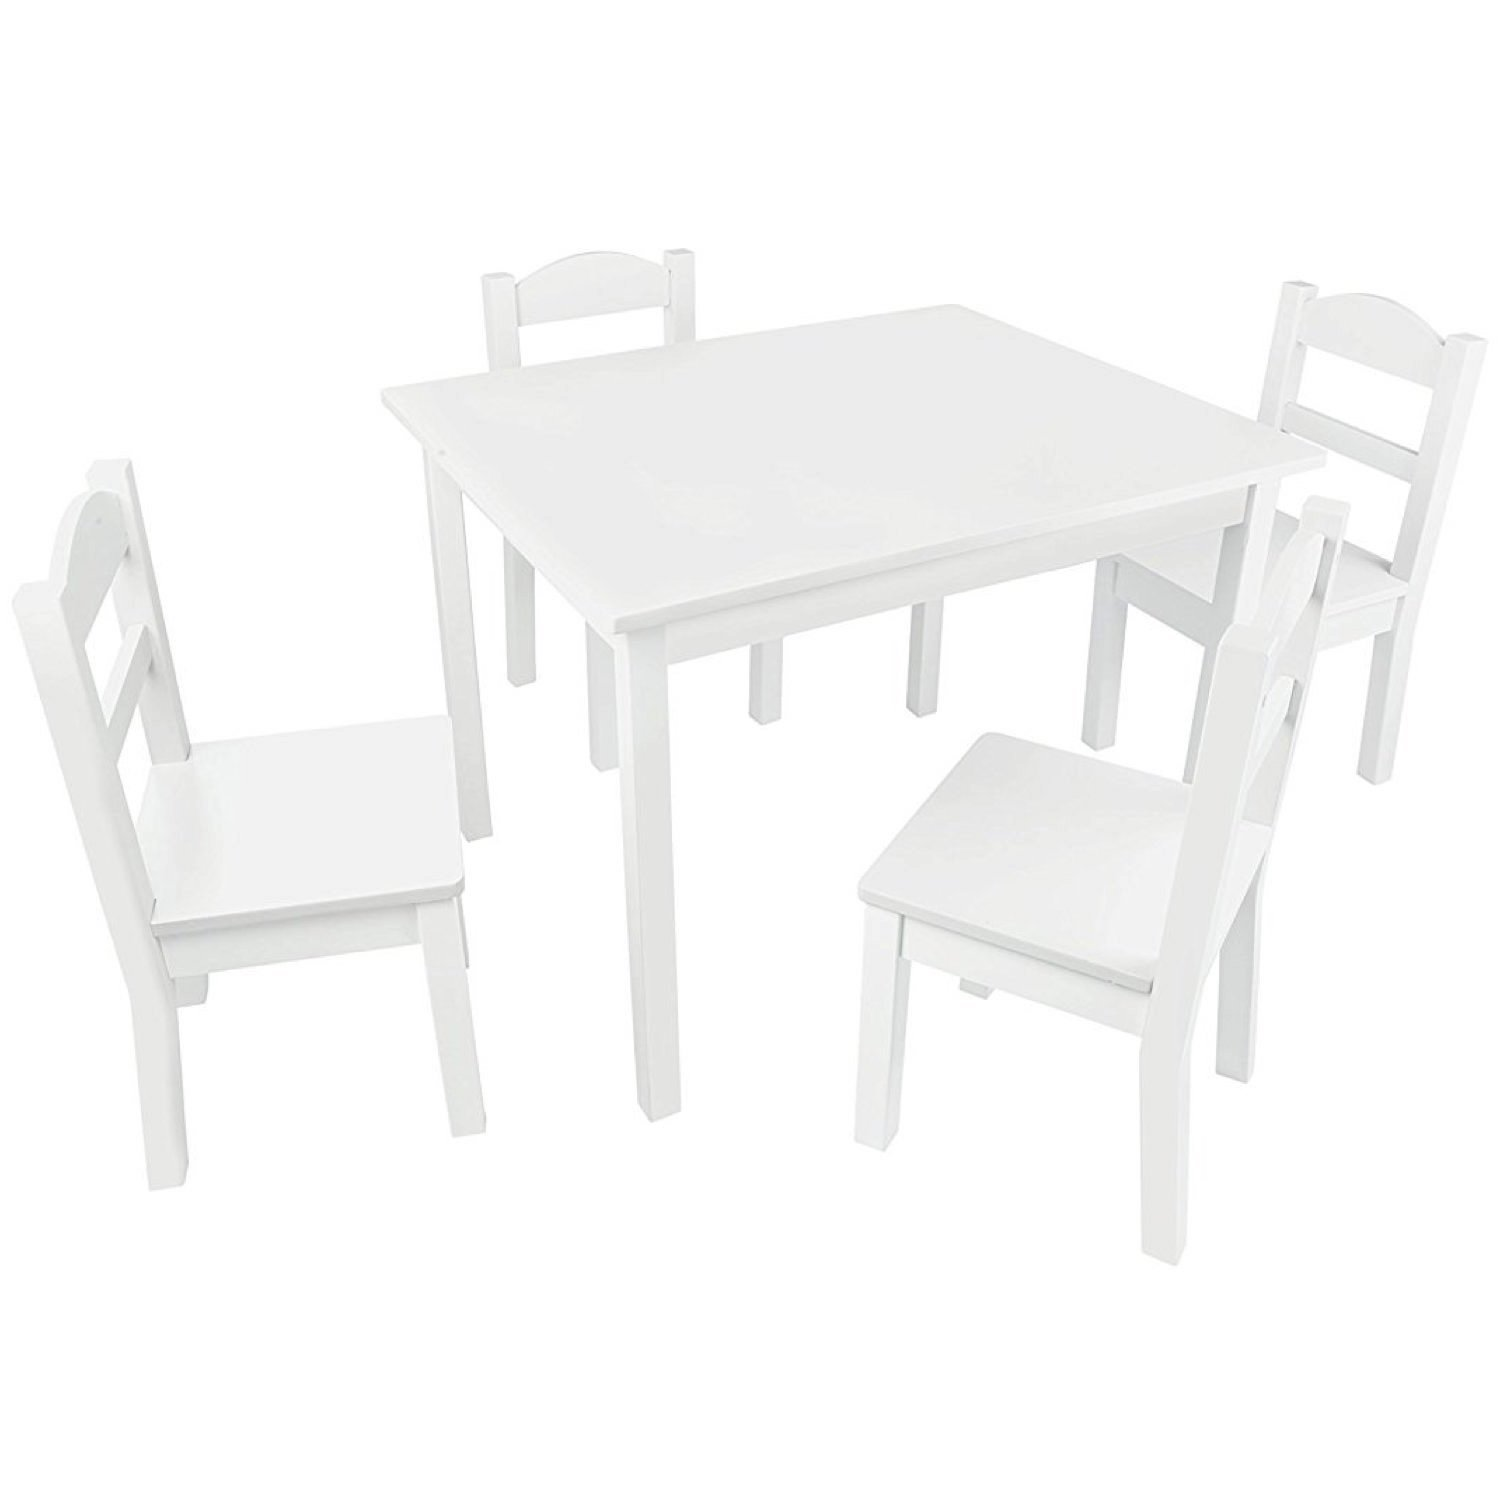 Magnificent Cheap Craft Table Chairs Find Craft Table Chairs Deals On Machost Co Dining Chair Design Ideas Machostcouk